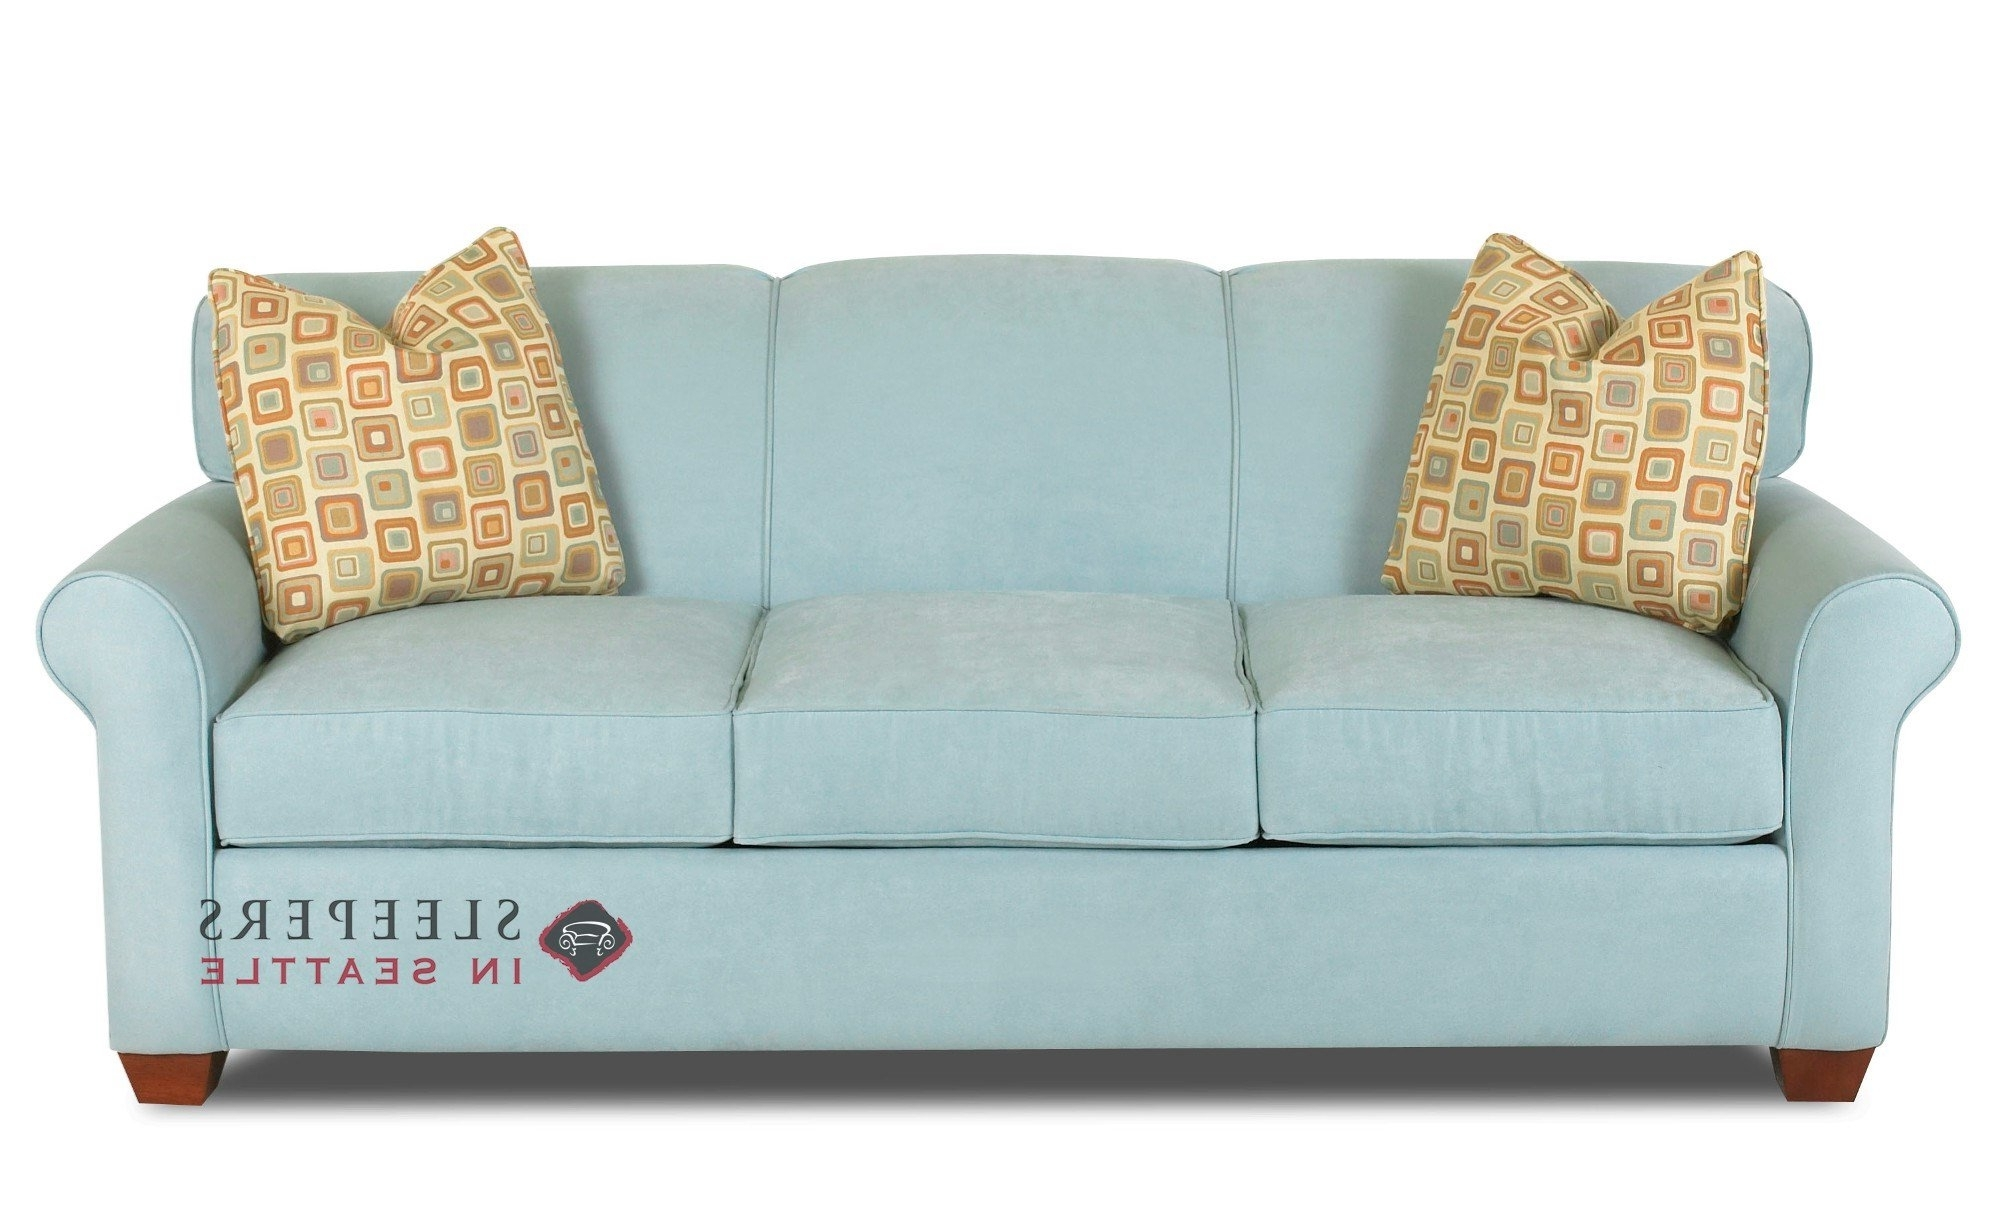 Customize And Personalize Calgary Queen Fabric Sofasavvy In Most Recent Queen Size Sofas (View 1 of 15)